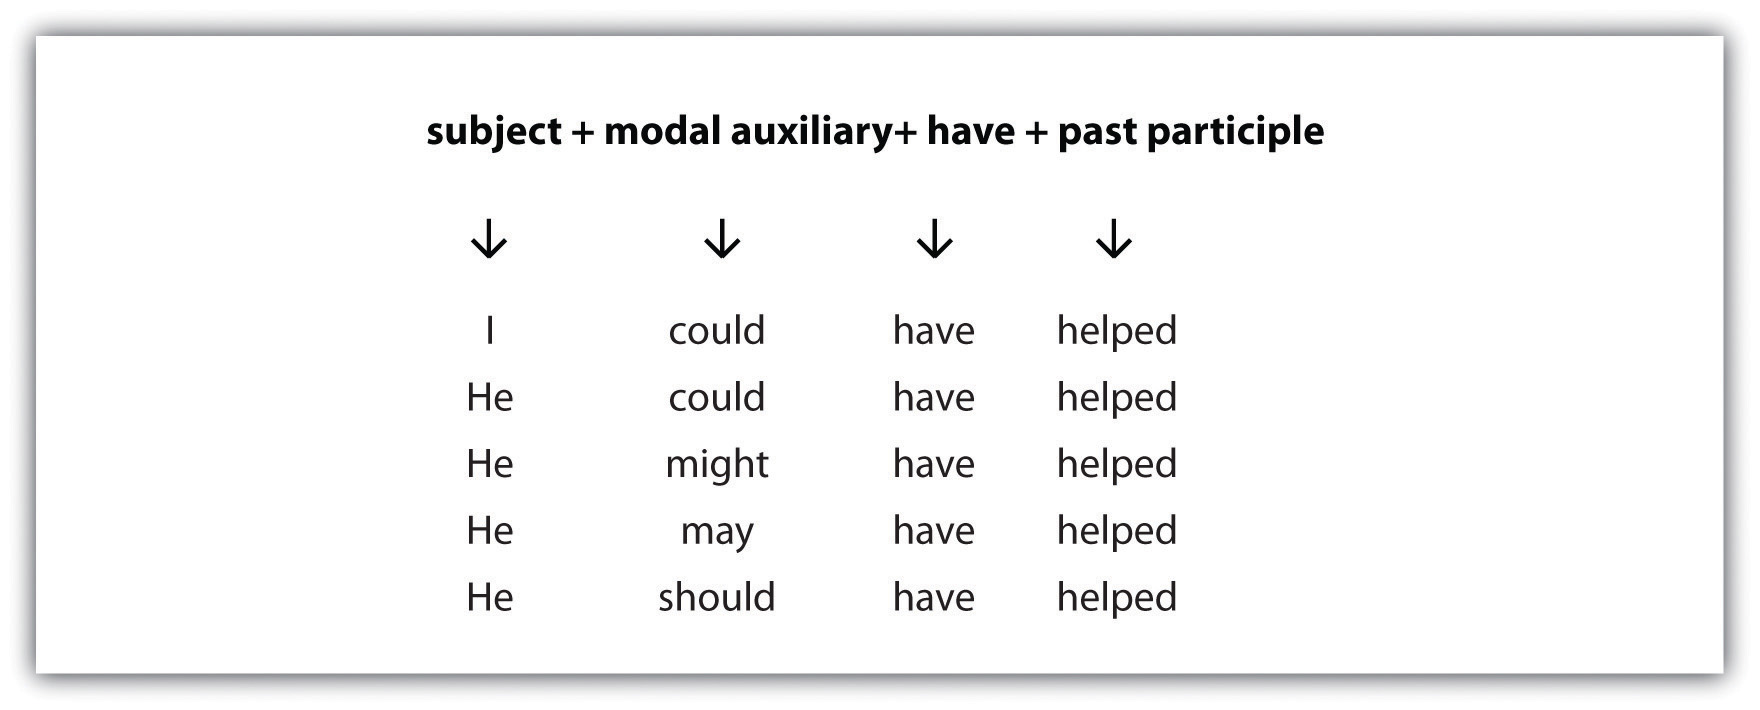 Subject (I, He, He, He, and He), modal auxiliary (could, could, might, may, and should), have (have, have, have, have, and have), and past participle (helped, helped, helped, helped, and helped).